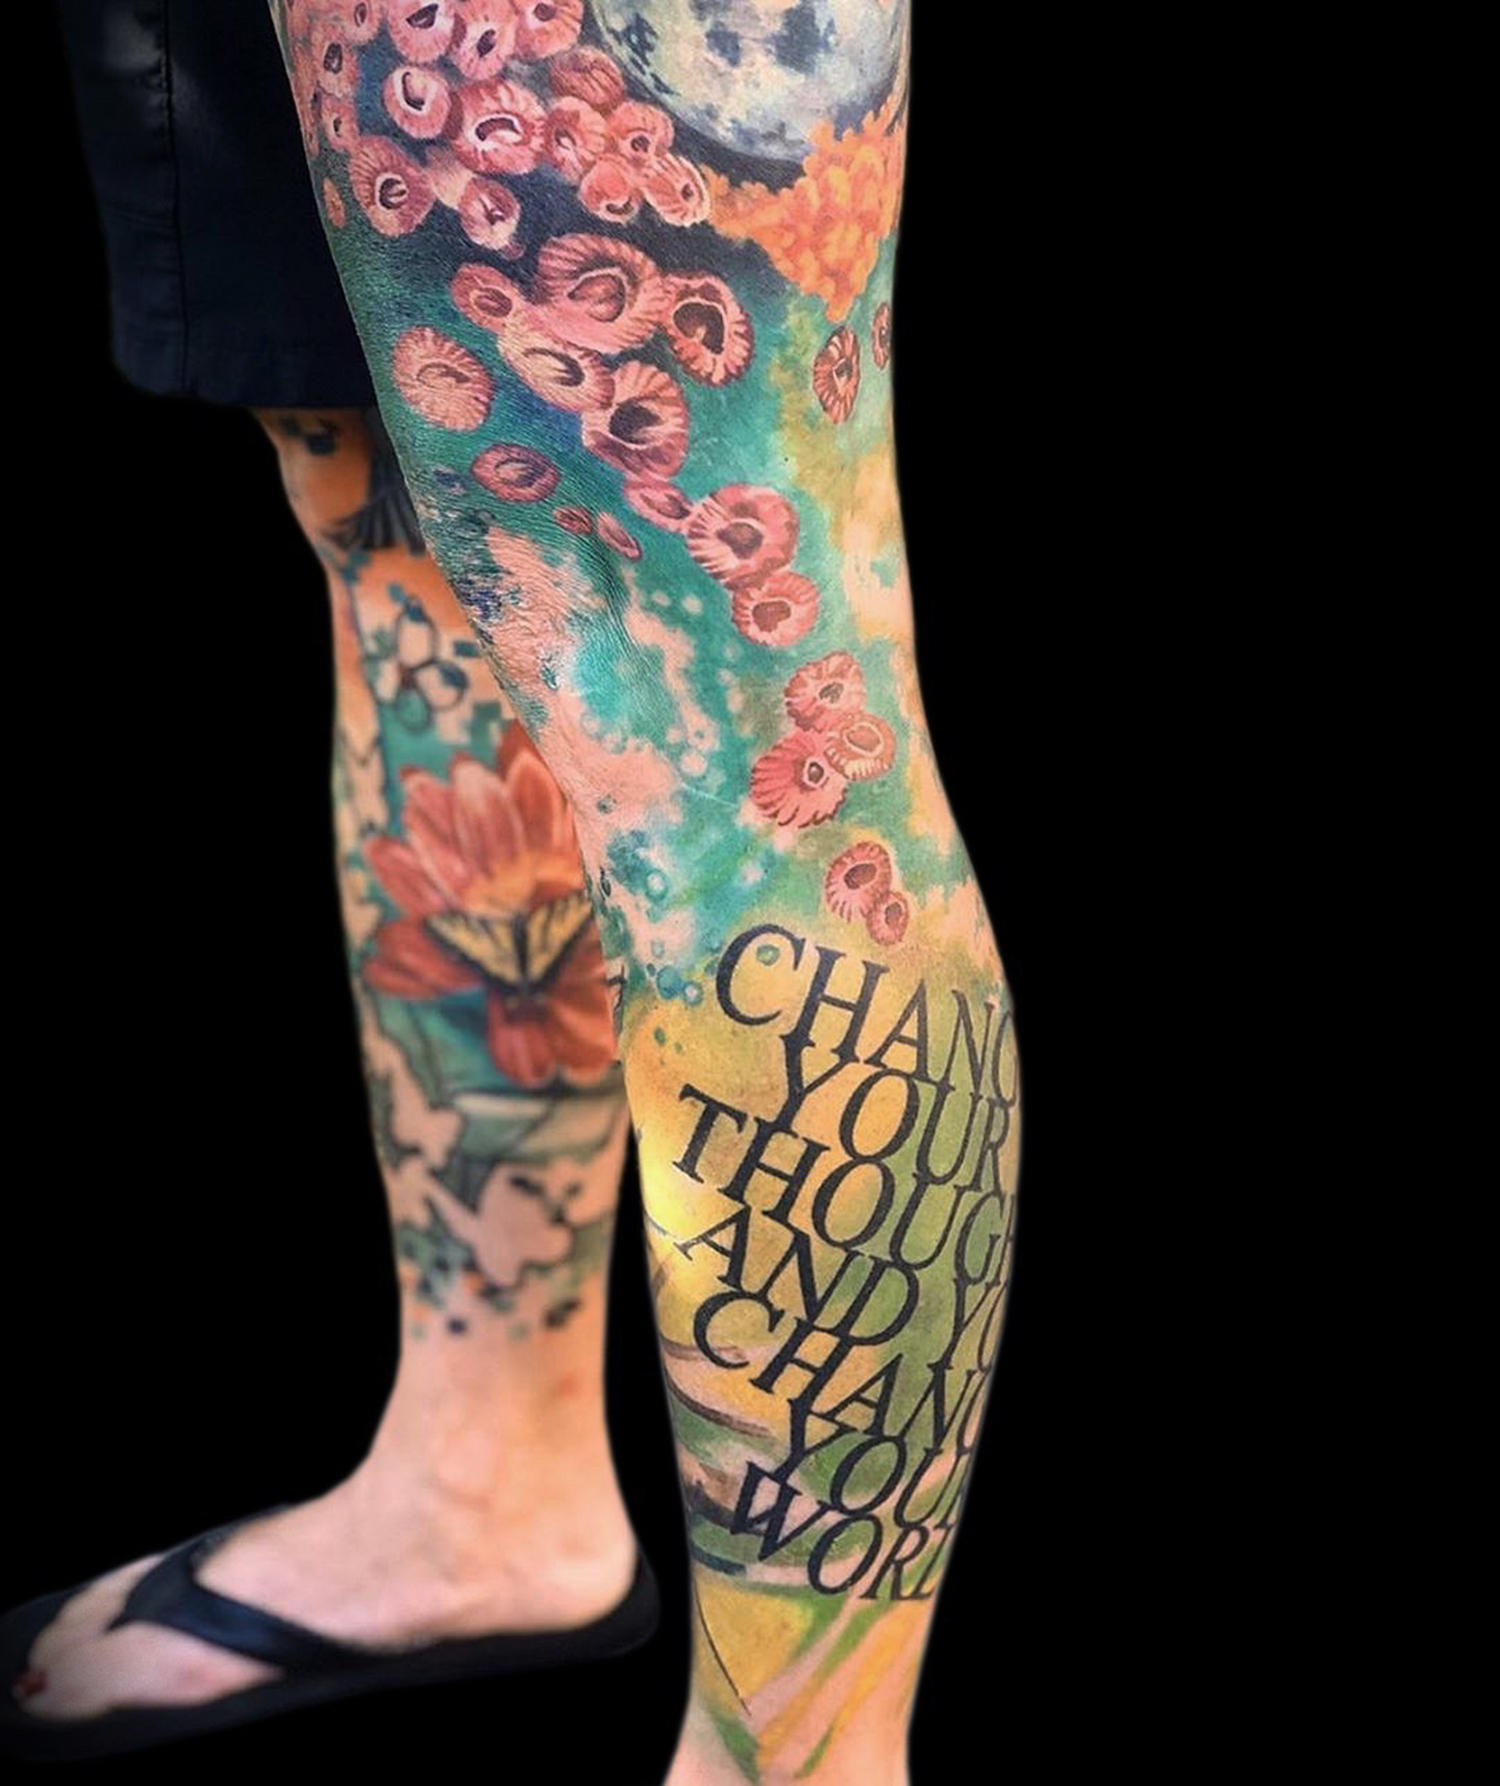 color tattoo leg sleeve kari barba, tattoo legend from long beach, sea theme